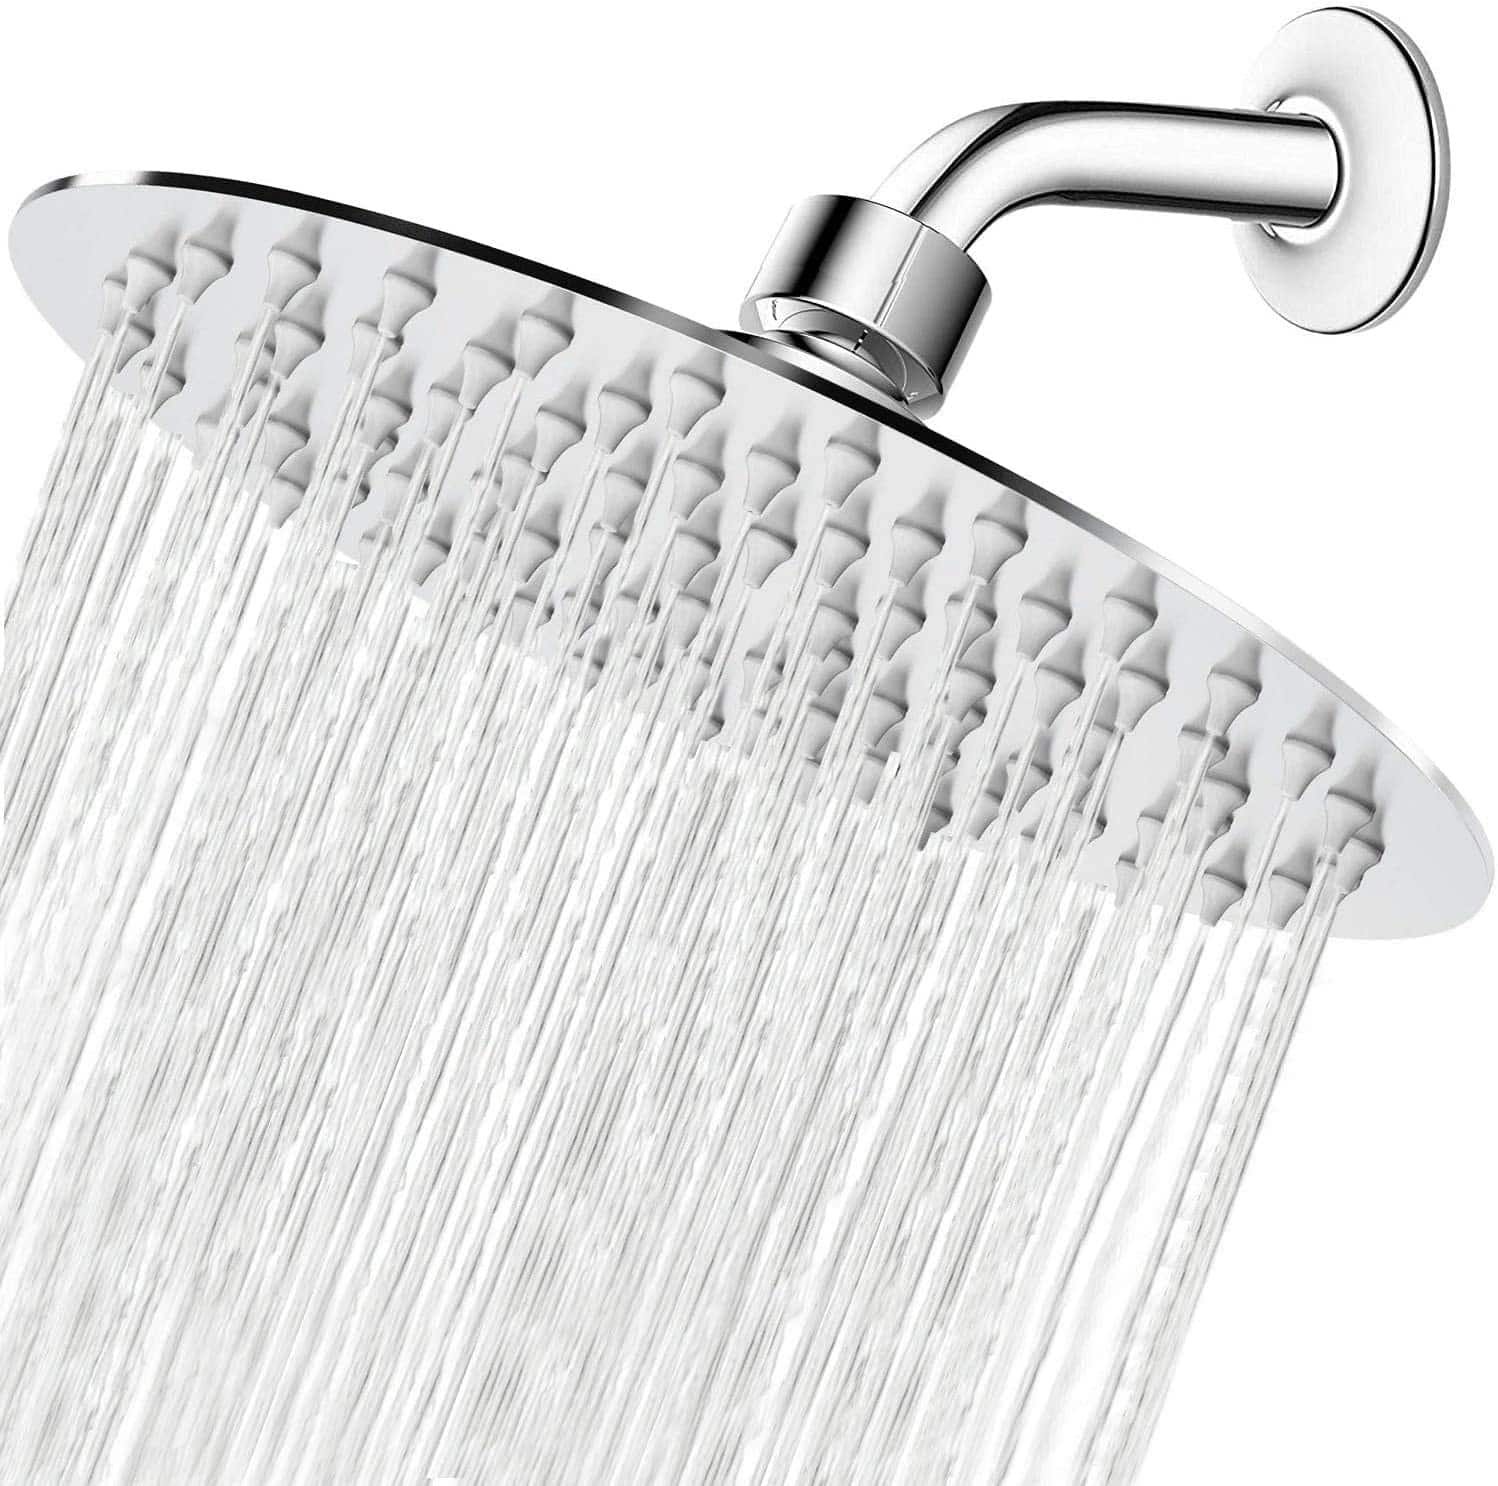 8 Inch Stainless Steel Rainfall Shower Head $13.99